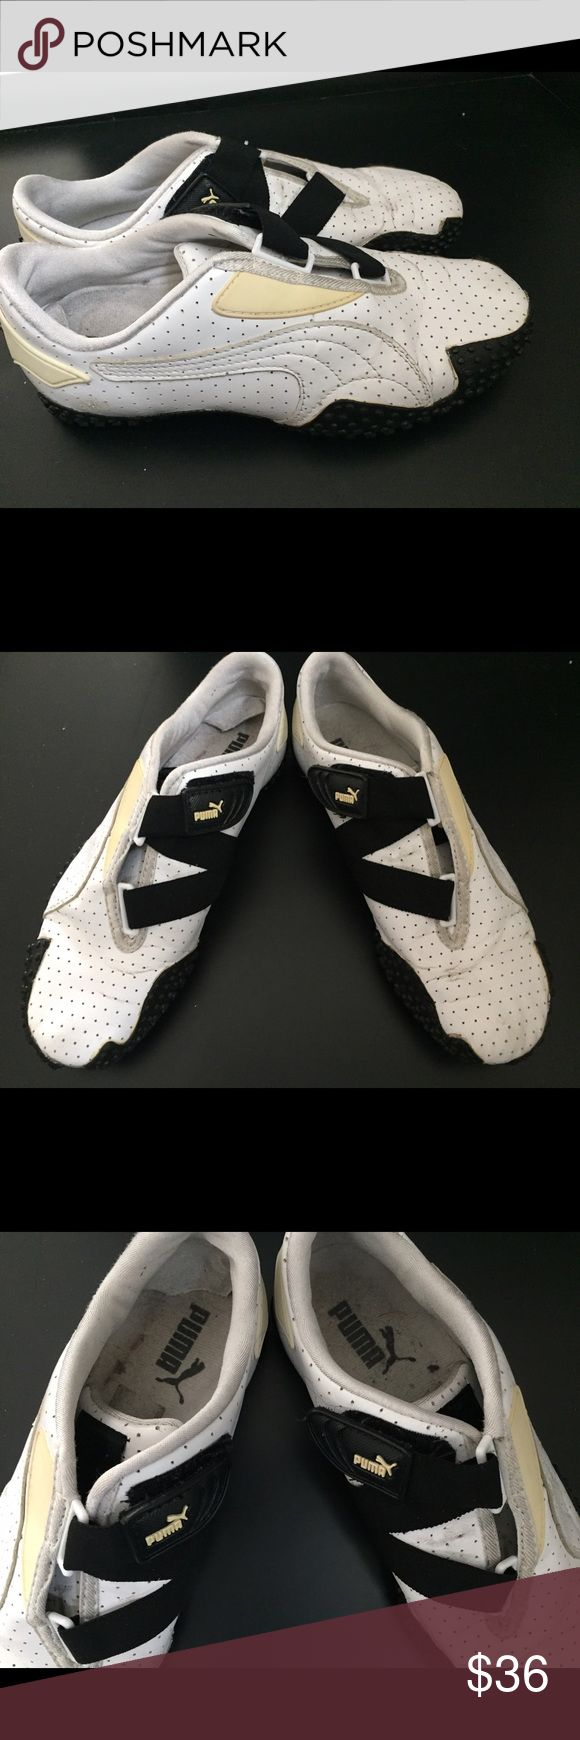 Puma Mostro Perf leather sneakers 7 White and black gently worn clean elegant sneakers Puma Shoes Sneakers